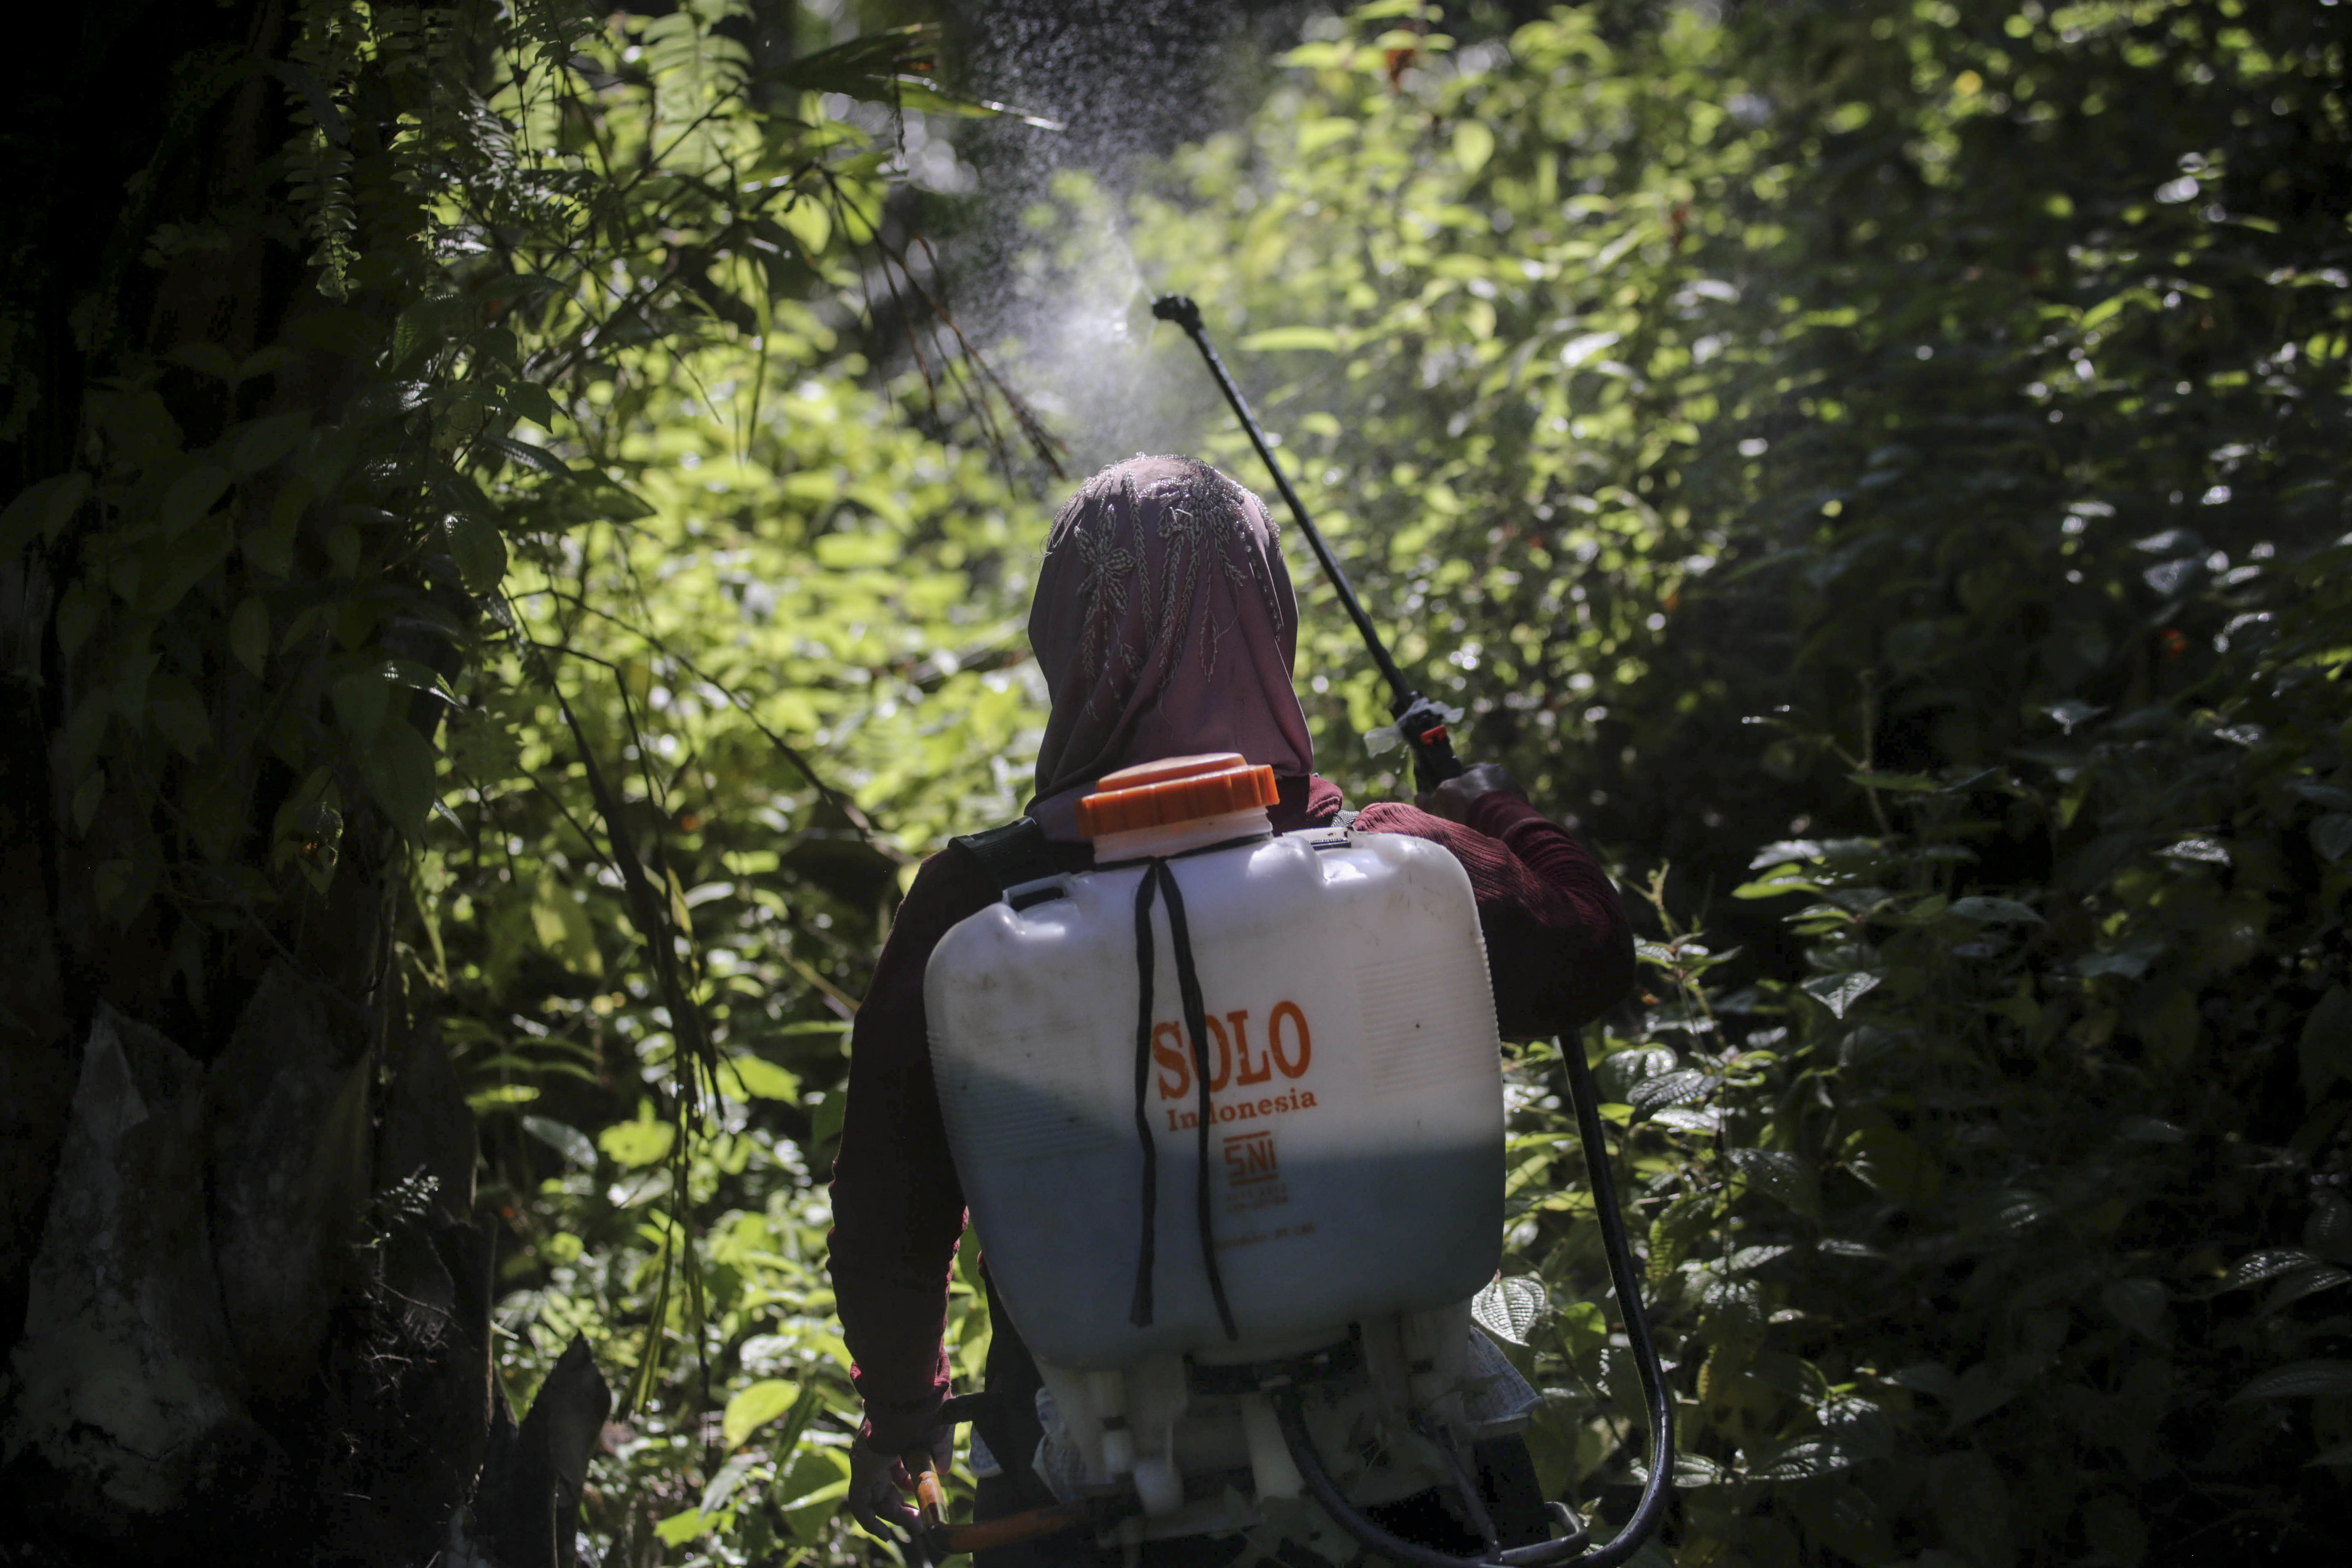 A female worker sprays herbicide in a palm oil plantation in Sumatra, Indonesia